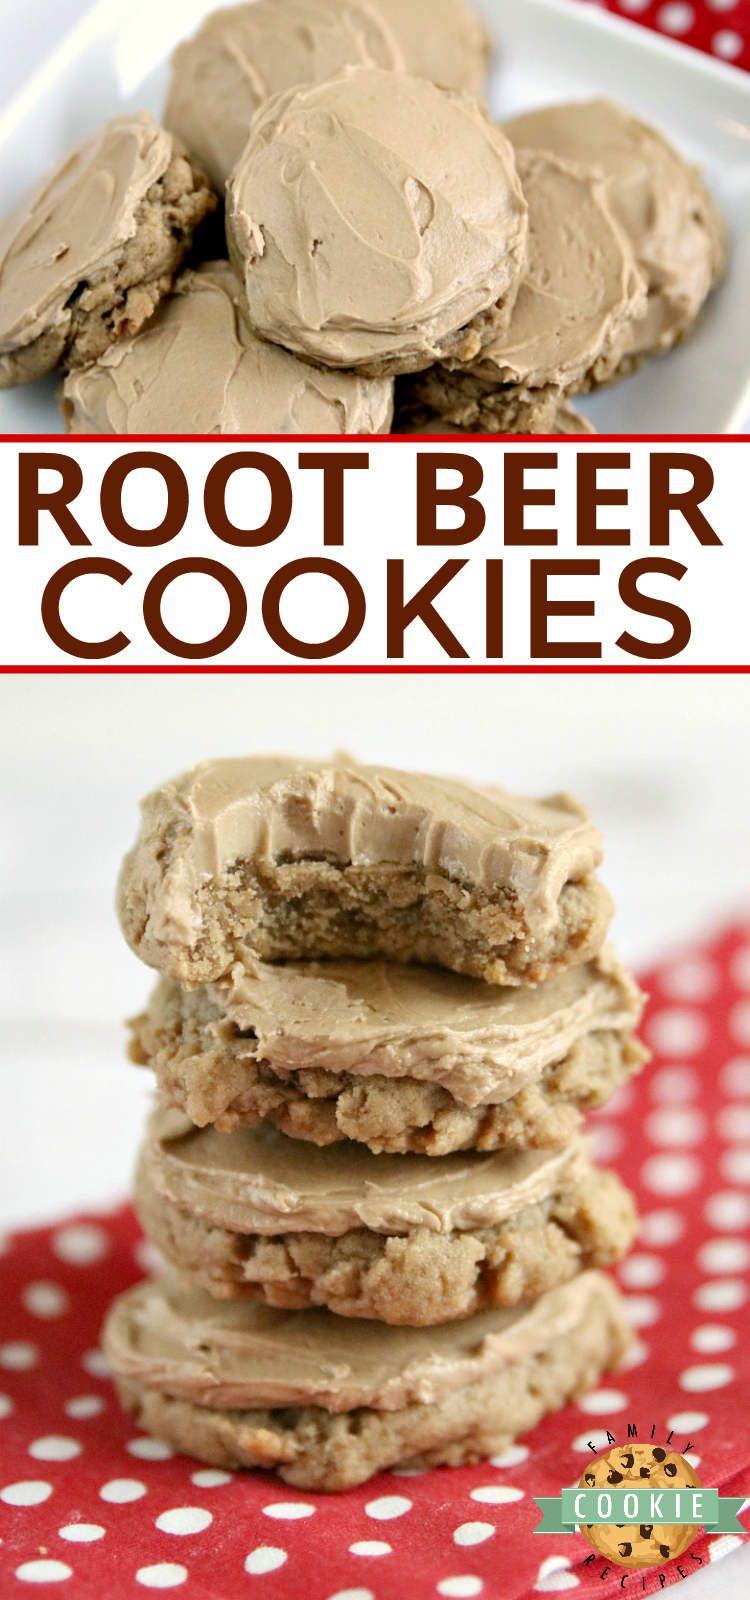 Root Beer Cookies are soft and delicious with root beer extract in the cookies and the buttercream frosting on top.